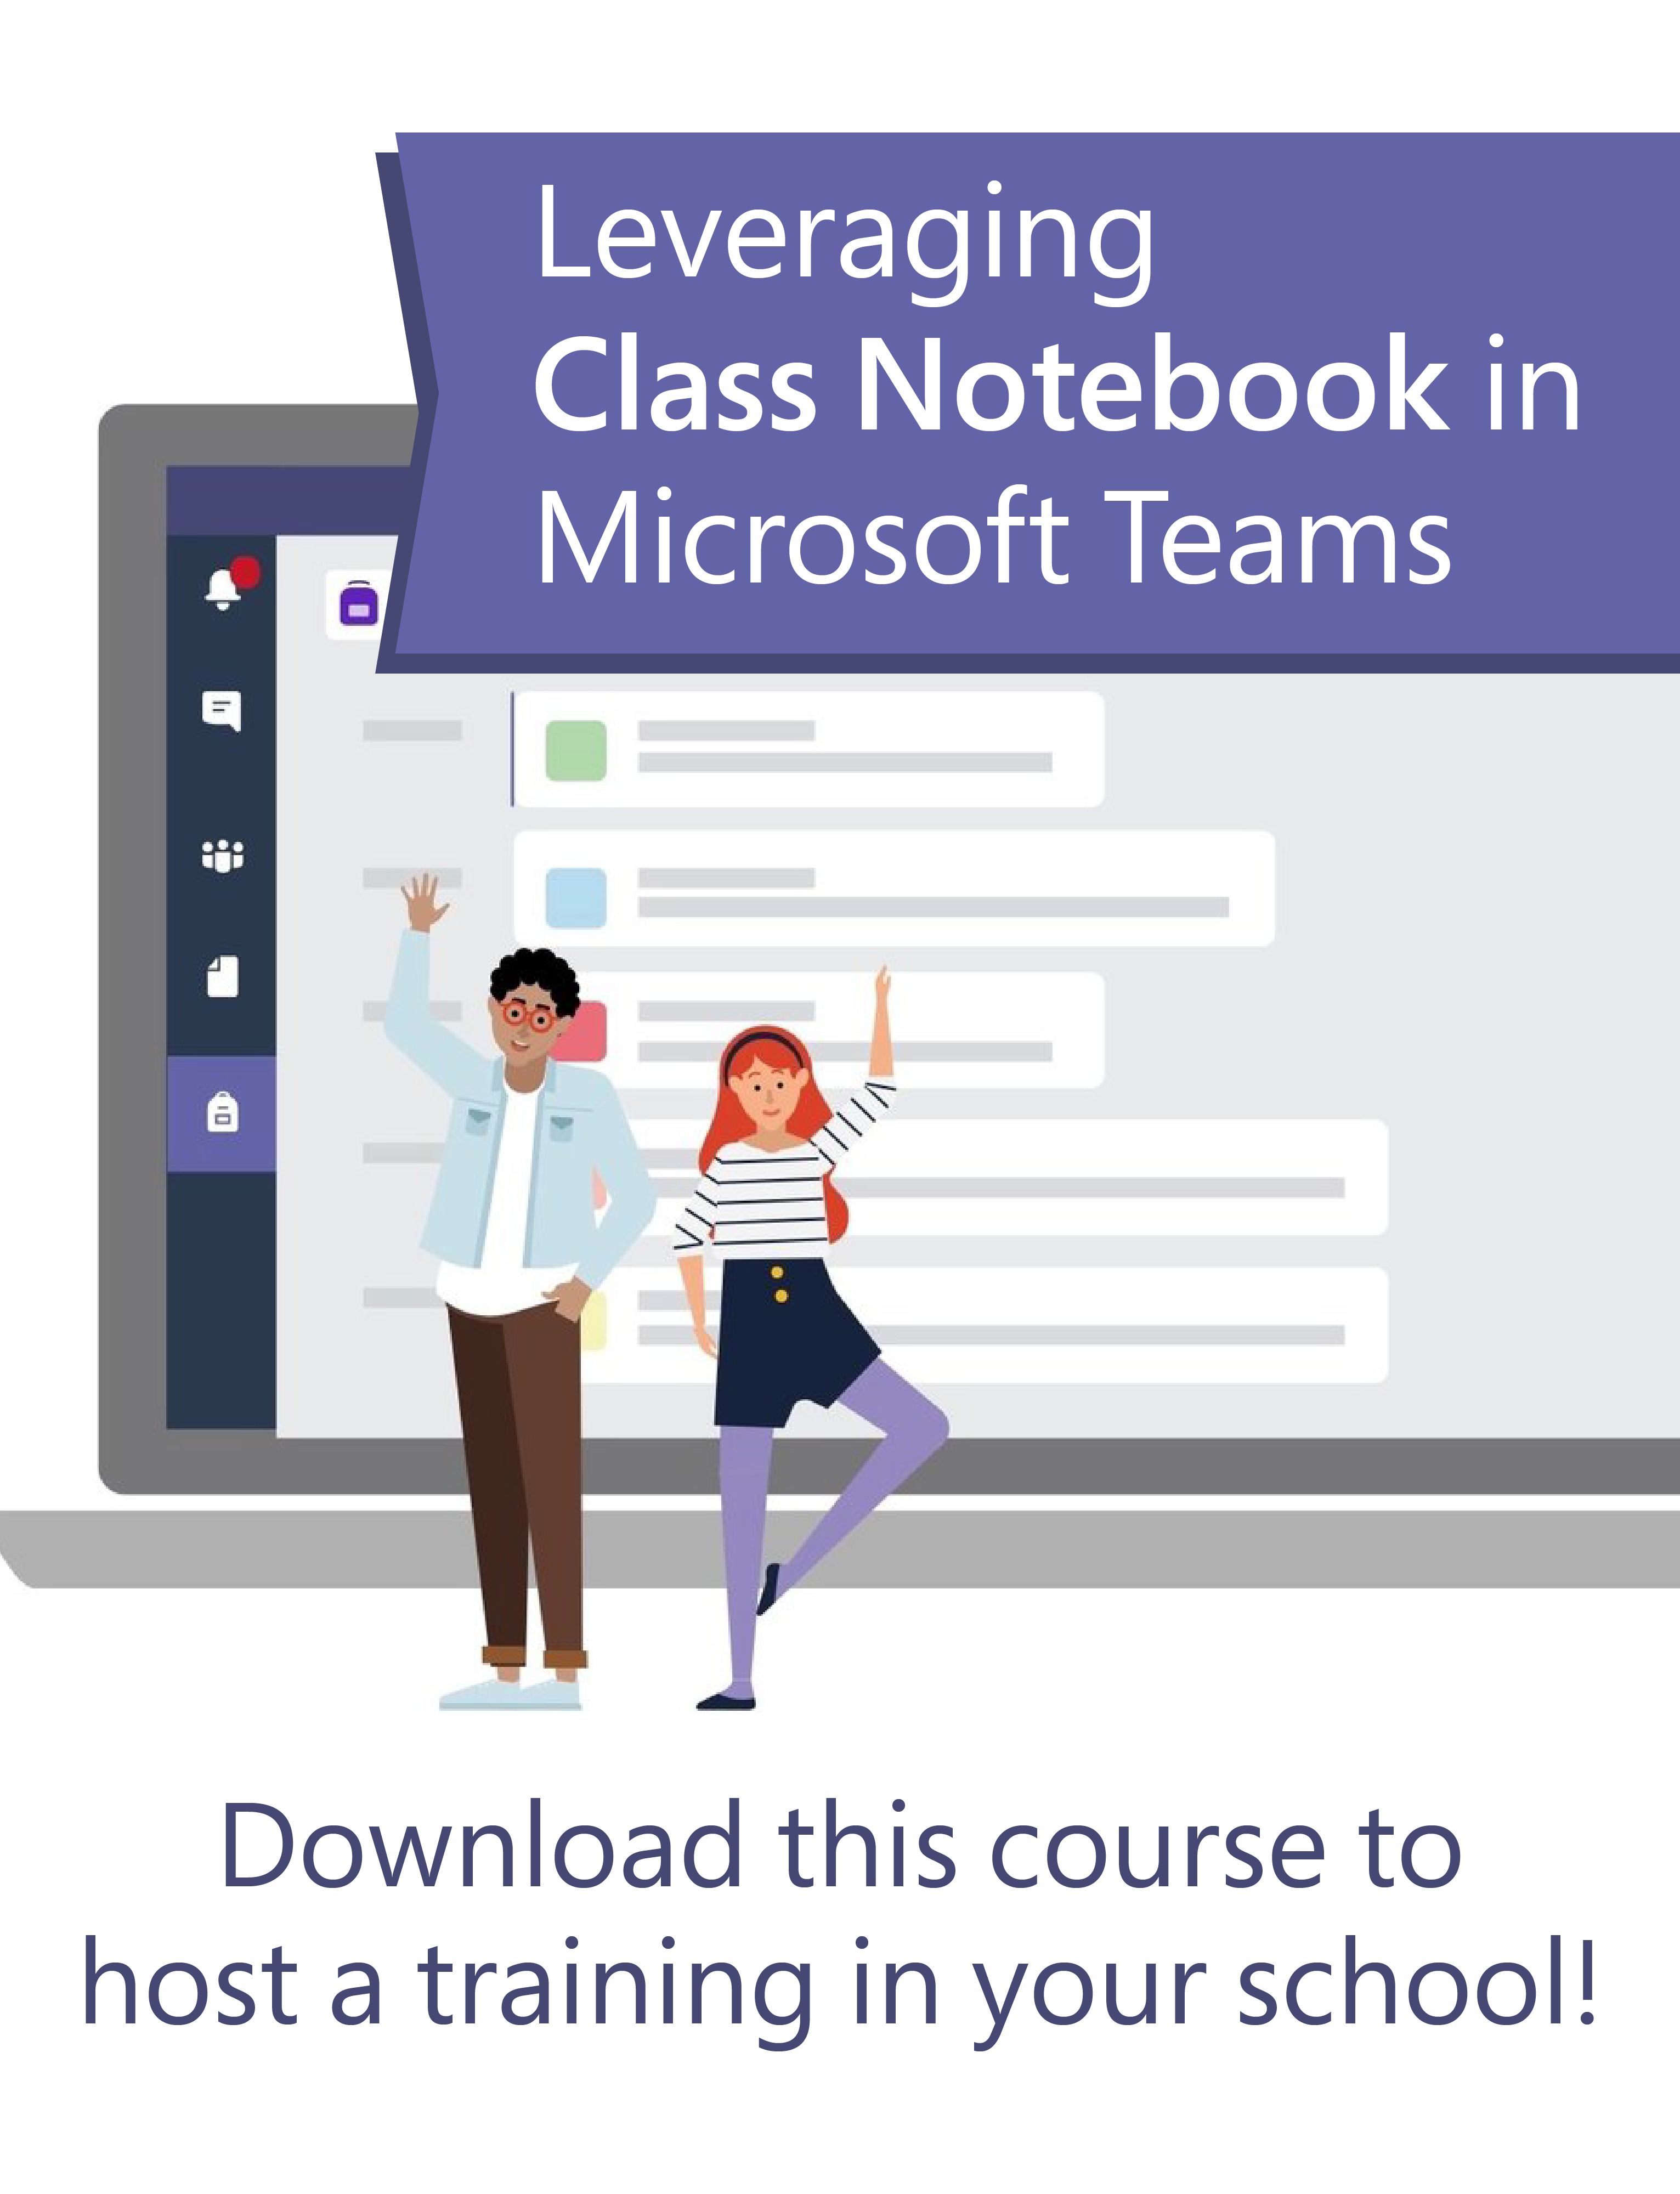 Learn how to leverage Class Notebook within Microsoft Teams to plan